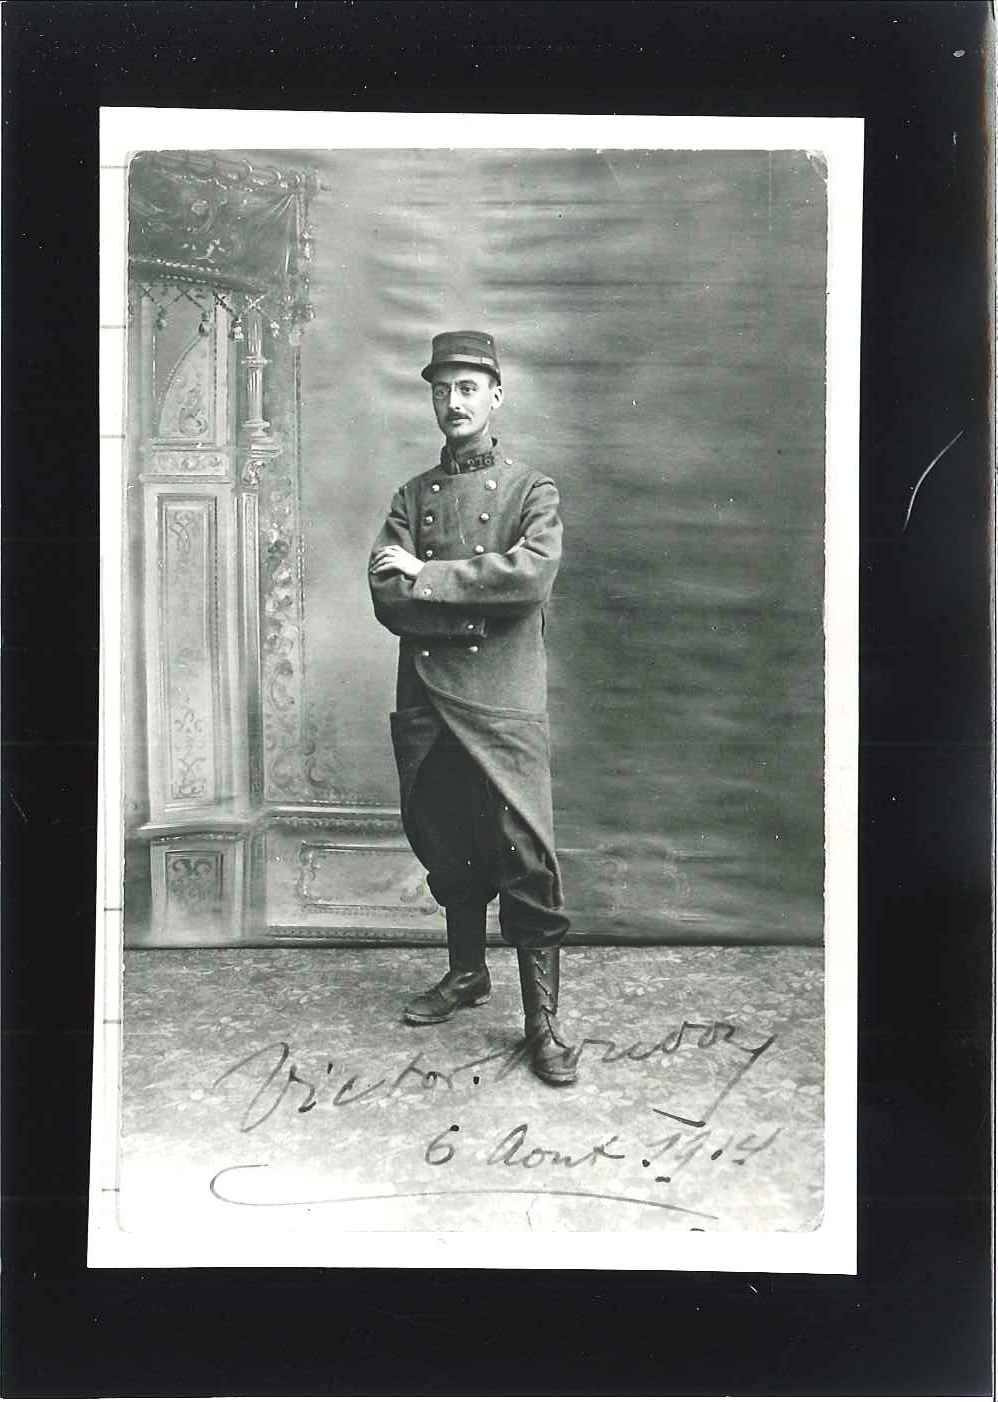 Victor Boudon le 4 août 1914 (Collection SAM2G)